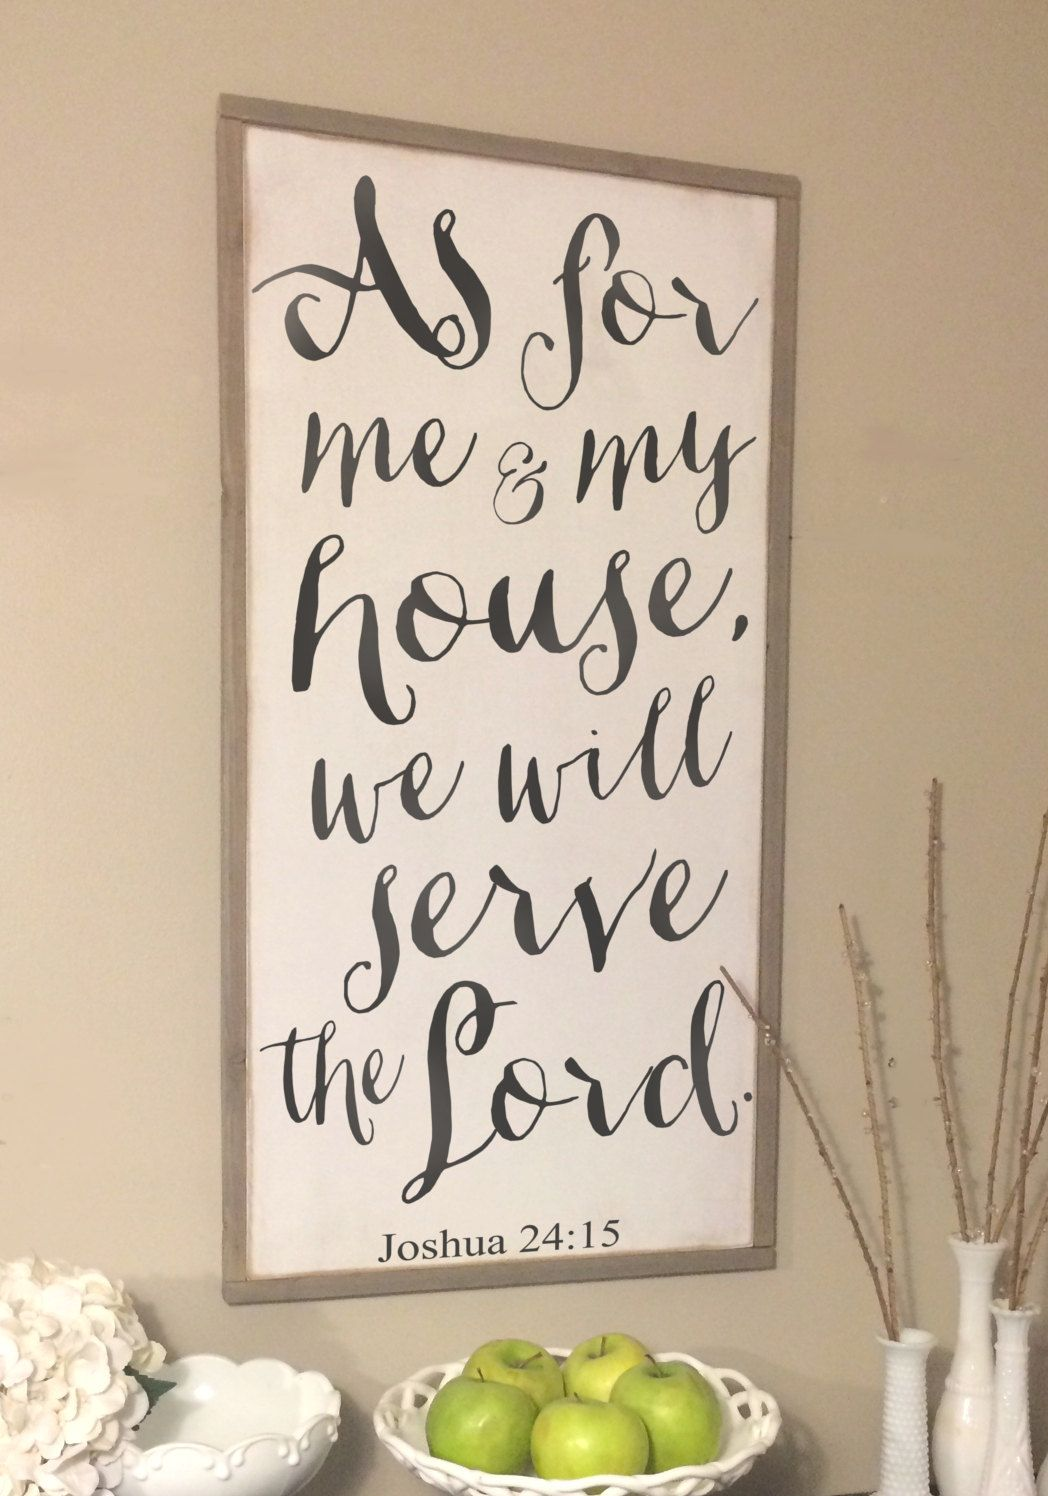 As for me and my house we will serve the lord framed wood sign also joshua rh pinterest